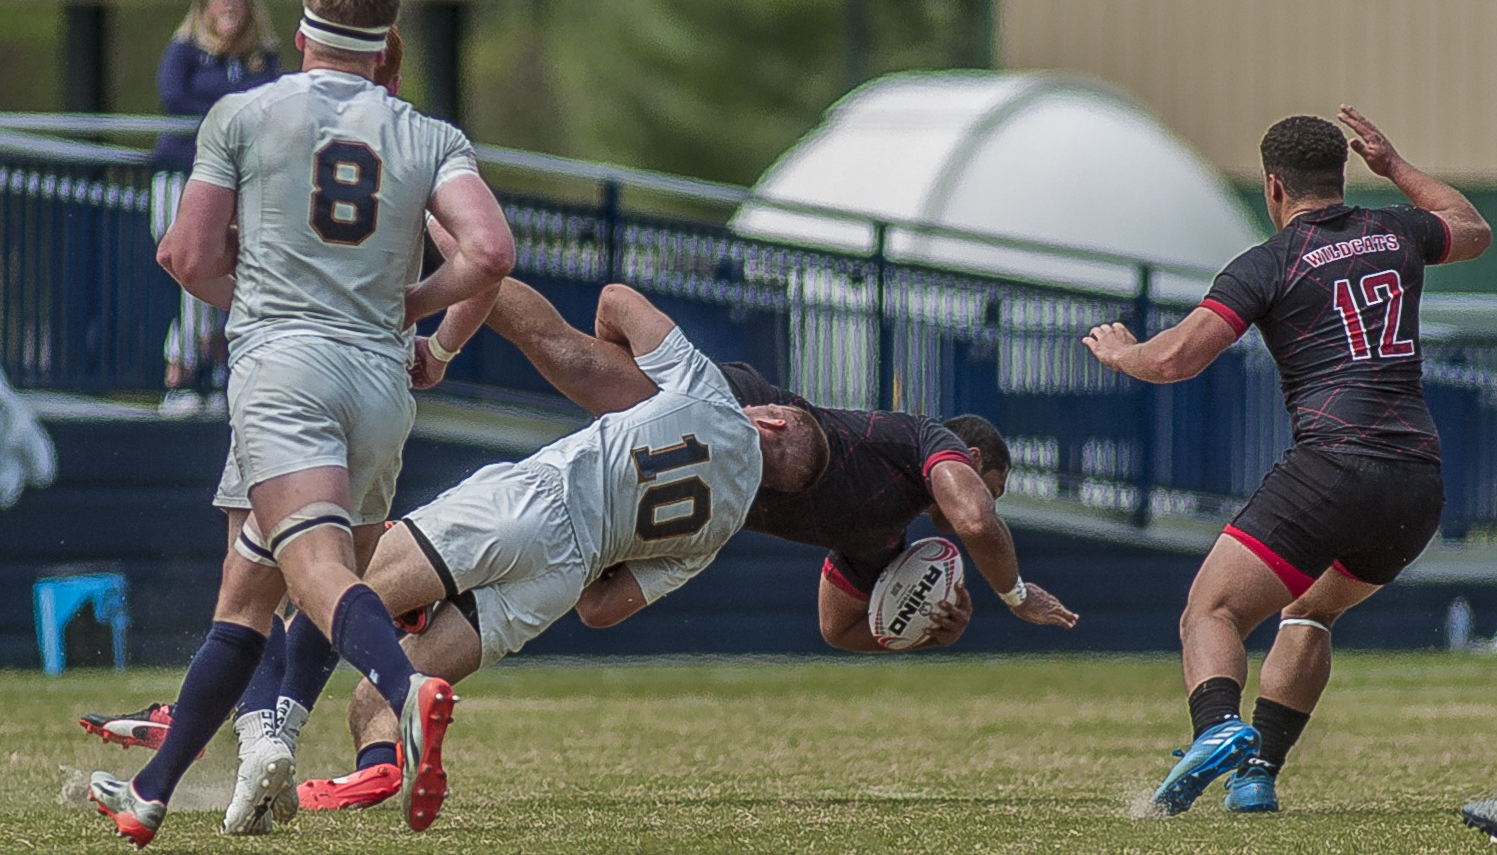 Navy v CWU rugby April 15 2017. Colleen McCloskey photo for Goff Rugby Report.